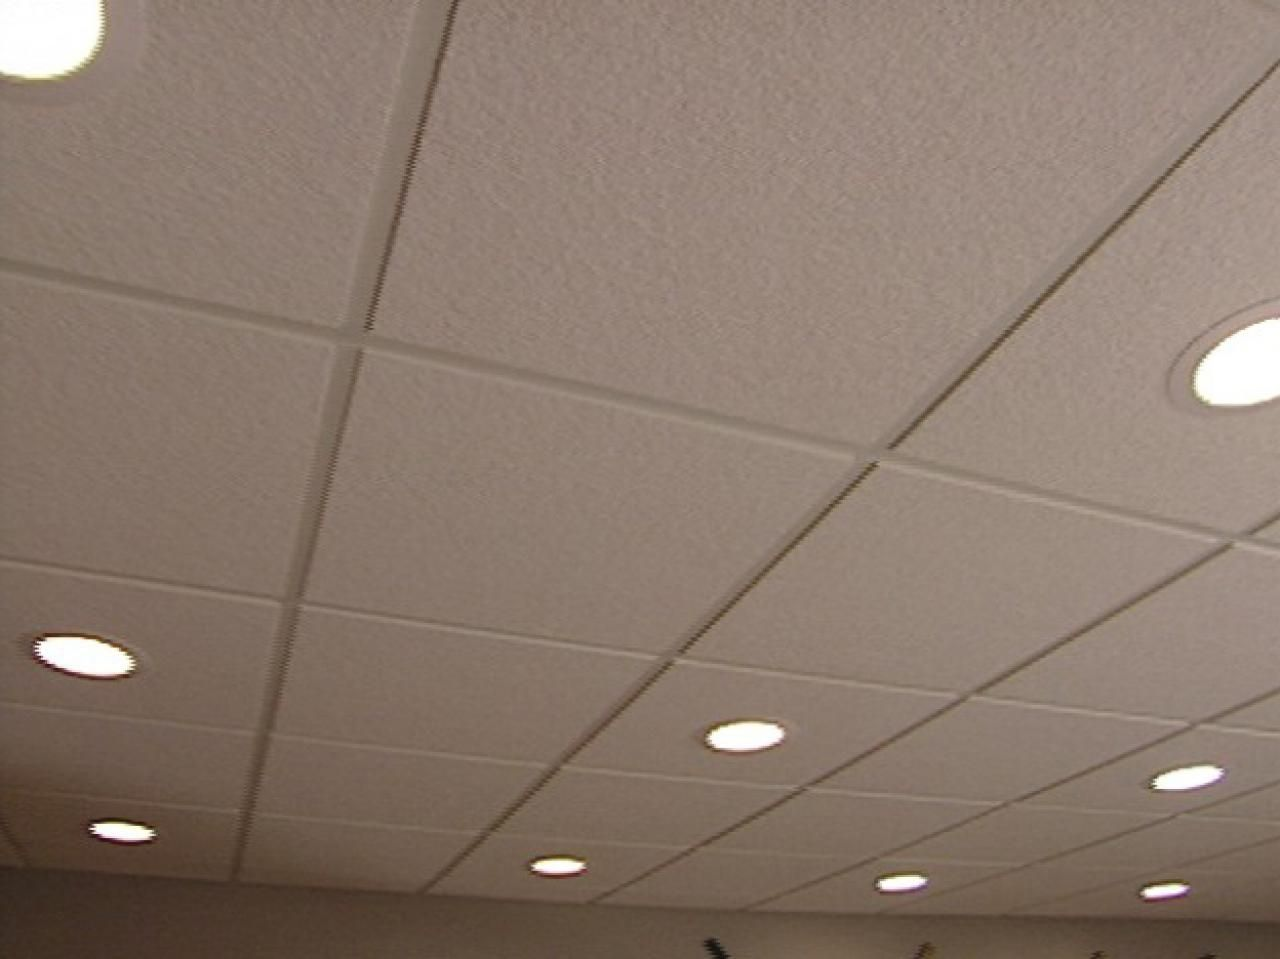 Led acoustical ceiling tile httpcreativechairsandtables led acoustical ceiling tile dailygadgetfo Image collections